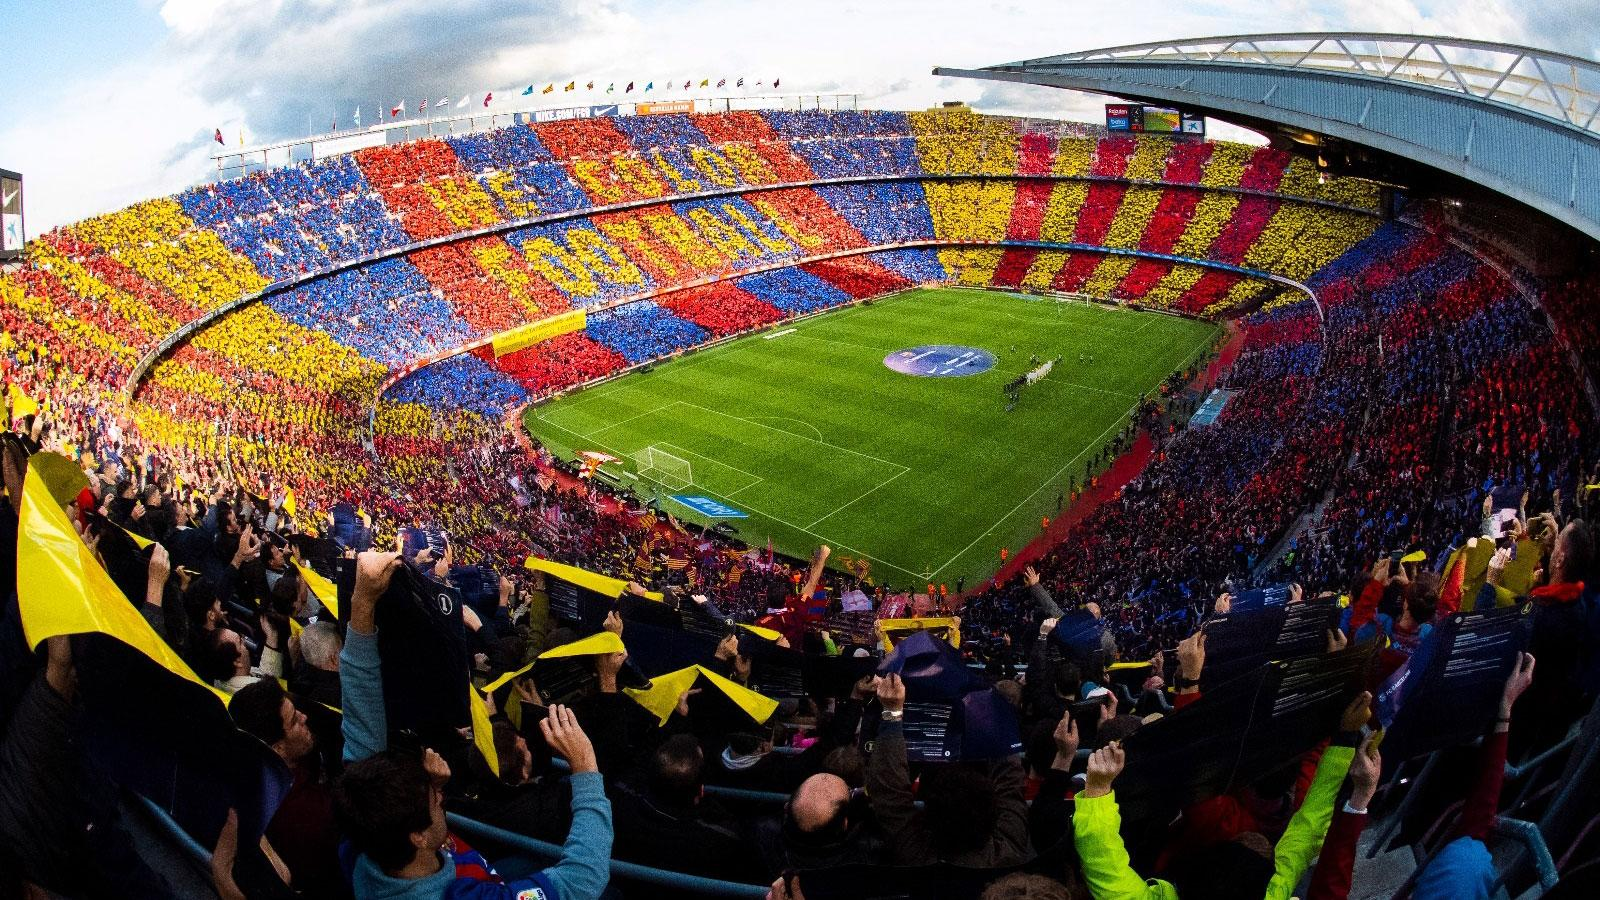 Stadio Camp Nou, 5G scende in campo